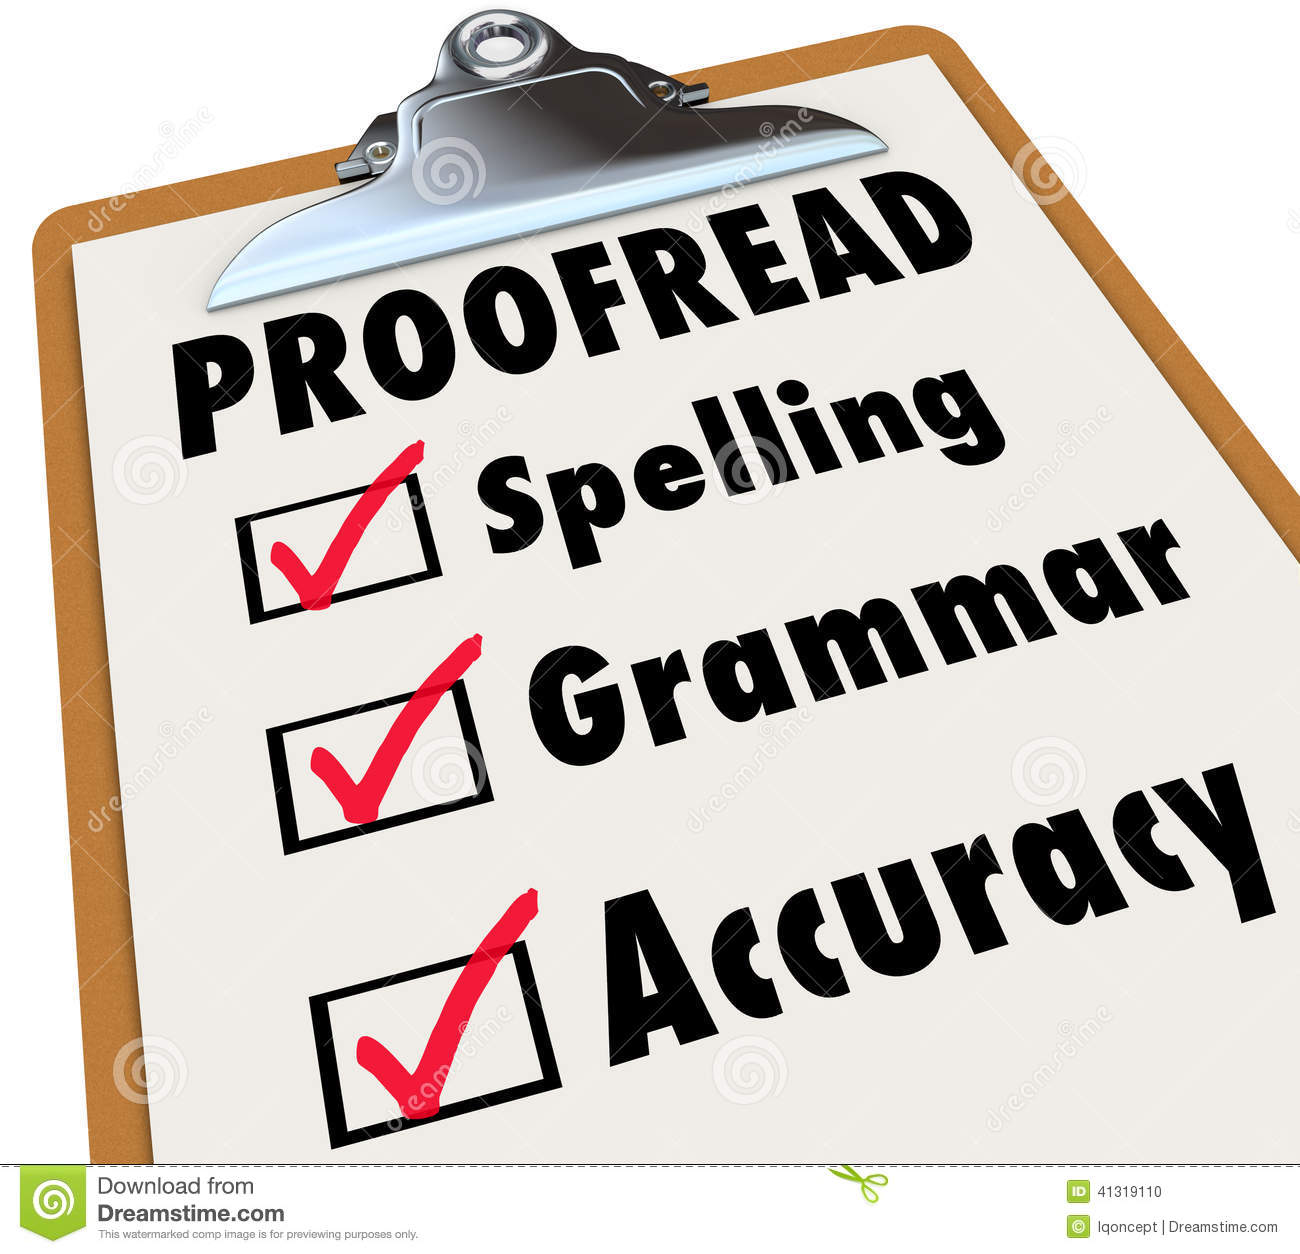 Editing and Proofreading service for your term papers essay and